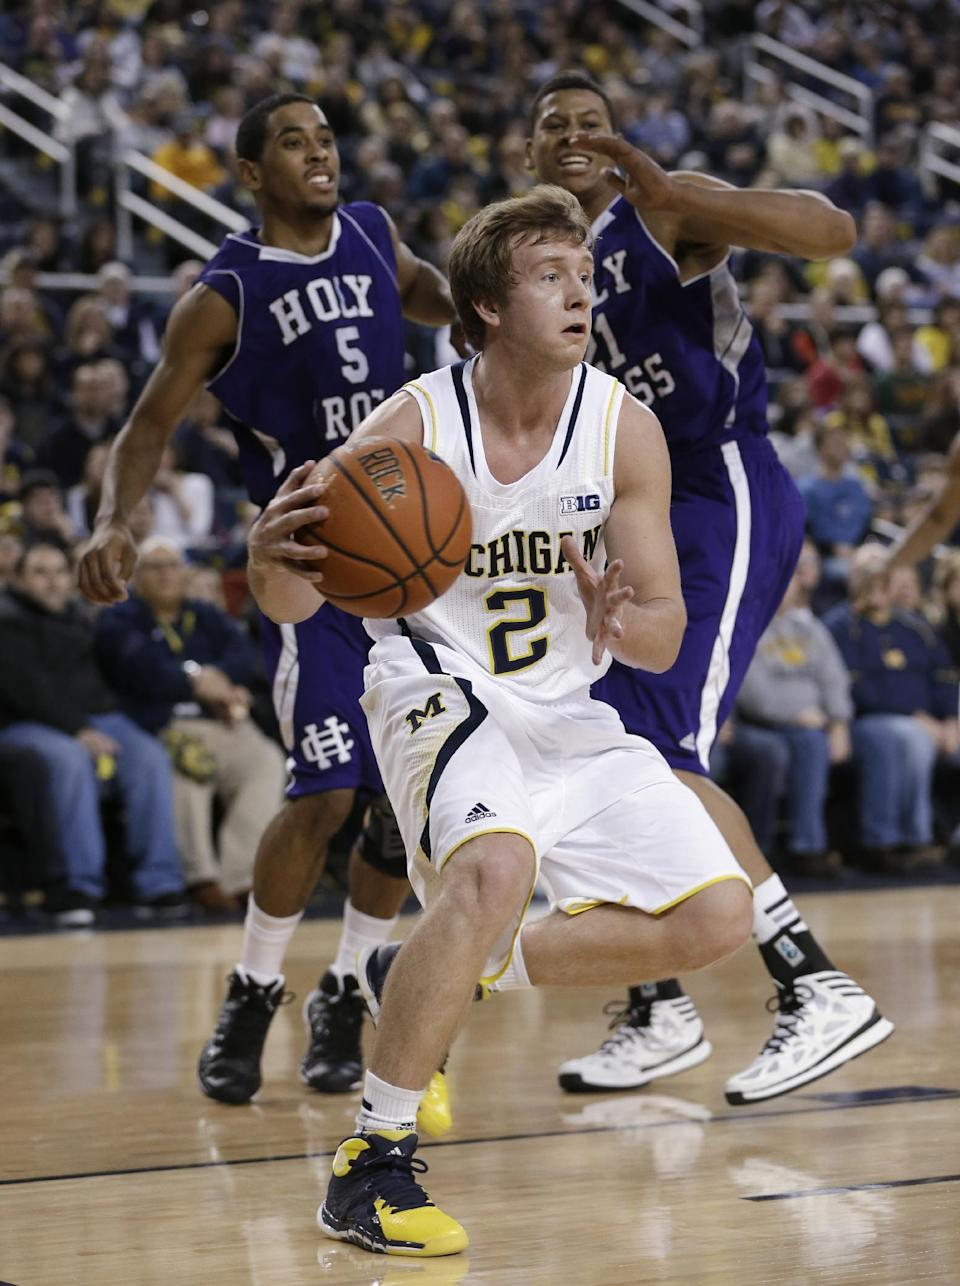 Michigan guard Spike Albrecht (2) looks to pass under the basket during the first half of an NCAA college basketball game against Holy Cross in Ann Arbor, Mich., Saturday, Dec. 28, 2013. At rear are Holy Cross' Cullen Hamilton (5) and Malachi Alexander. (AP Photo/Carlos Osorio)